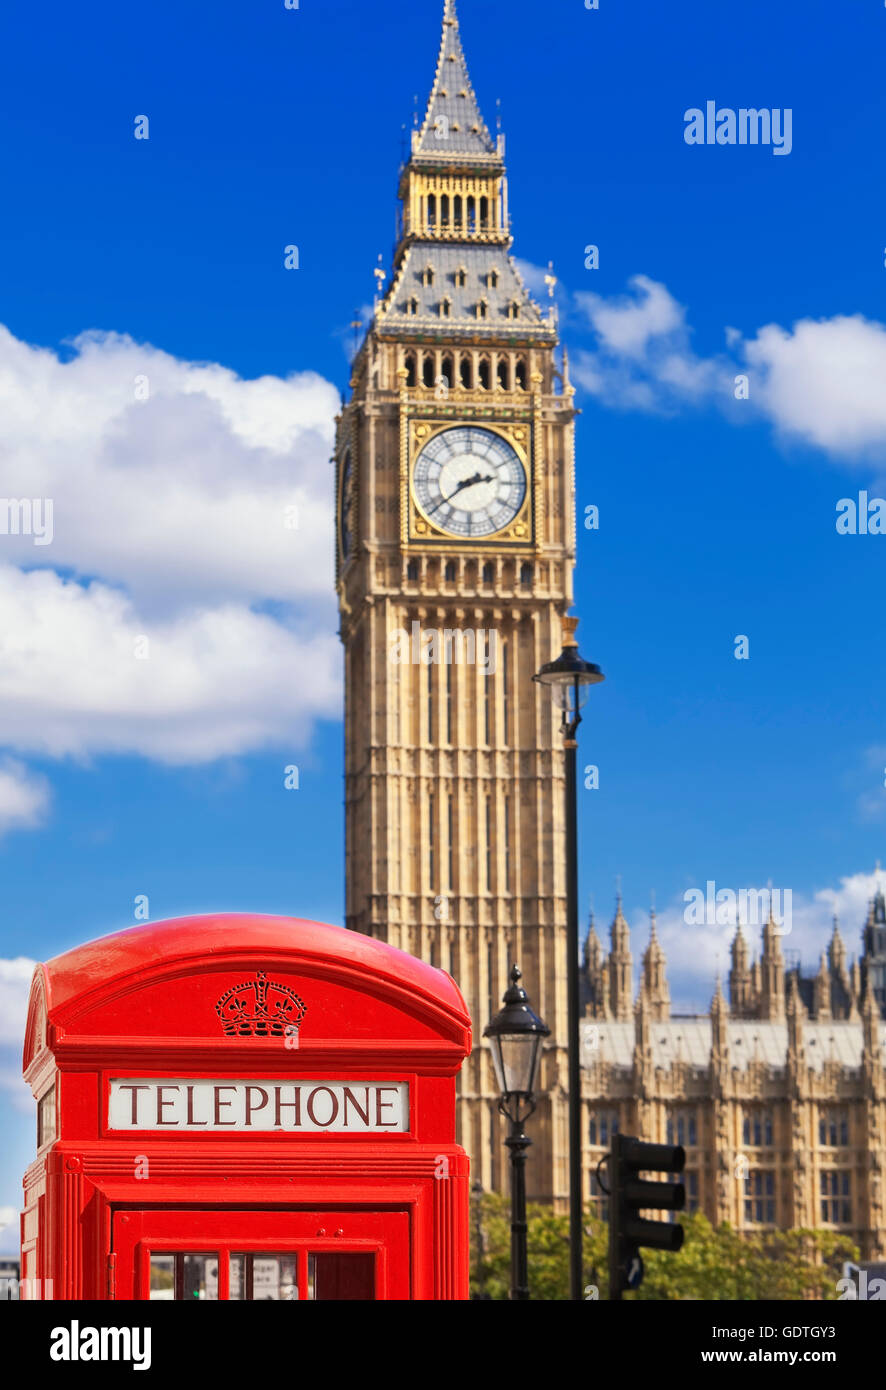 Red telephone box and Big Ben, London, U.K. - Stock Image